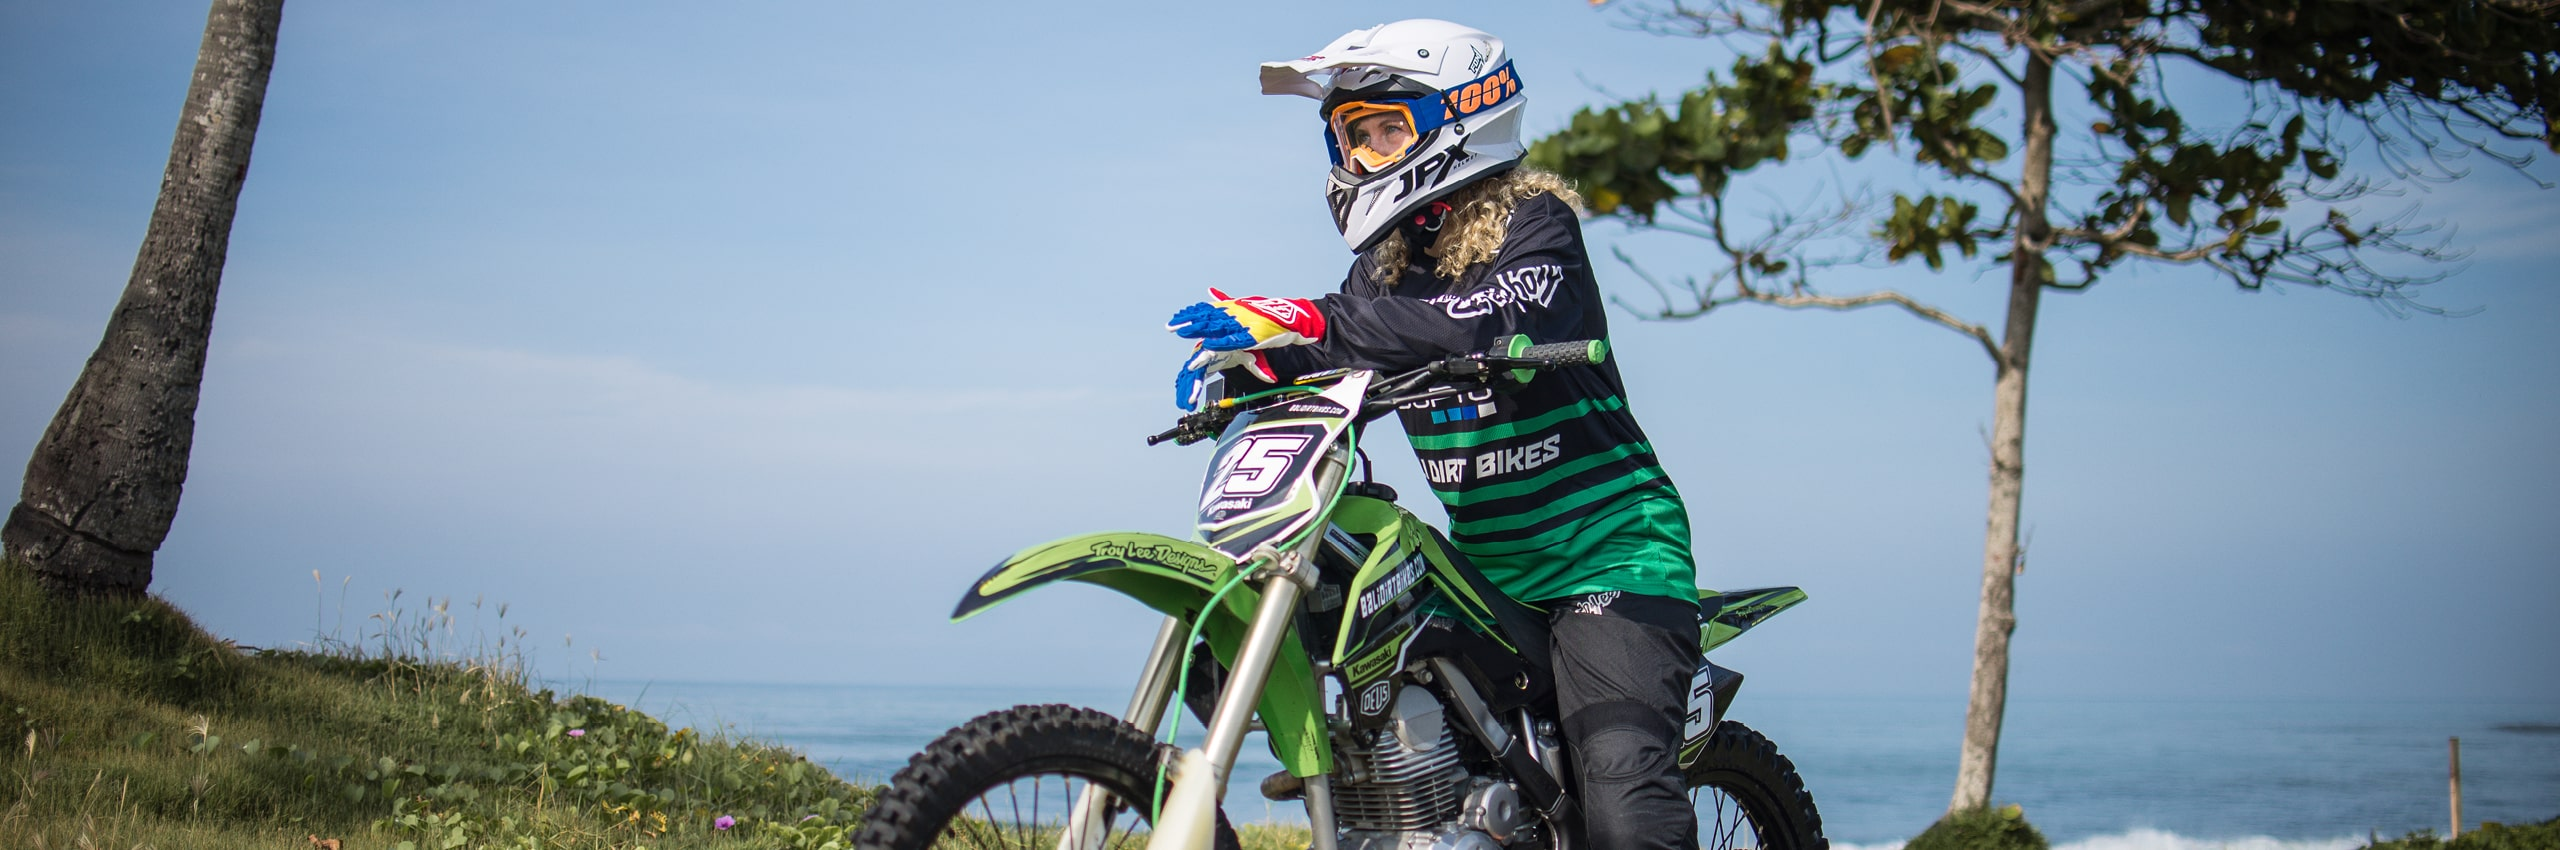 Bali_Dirt_Bikes_Learn_to_ride_Slider1